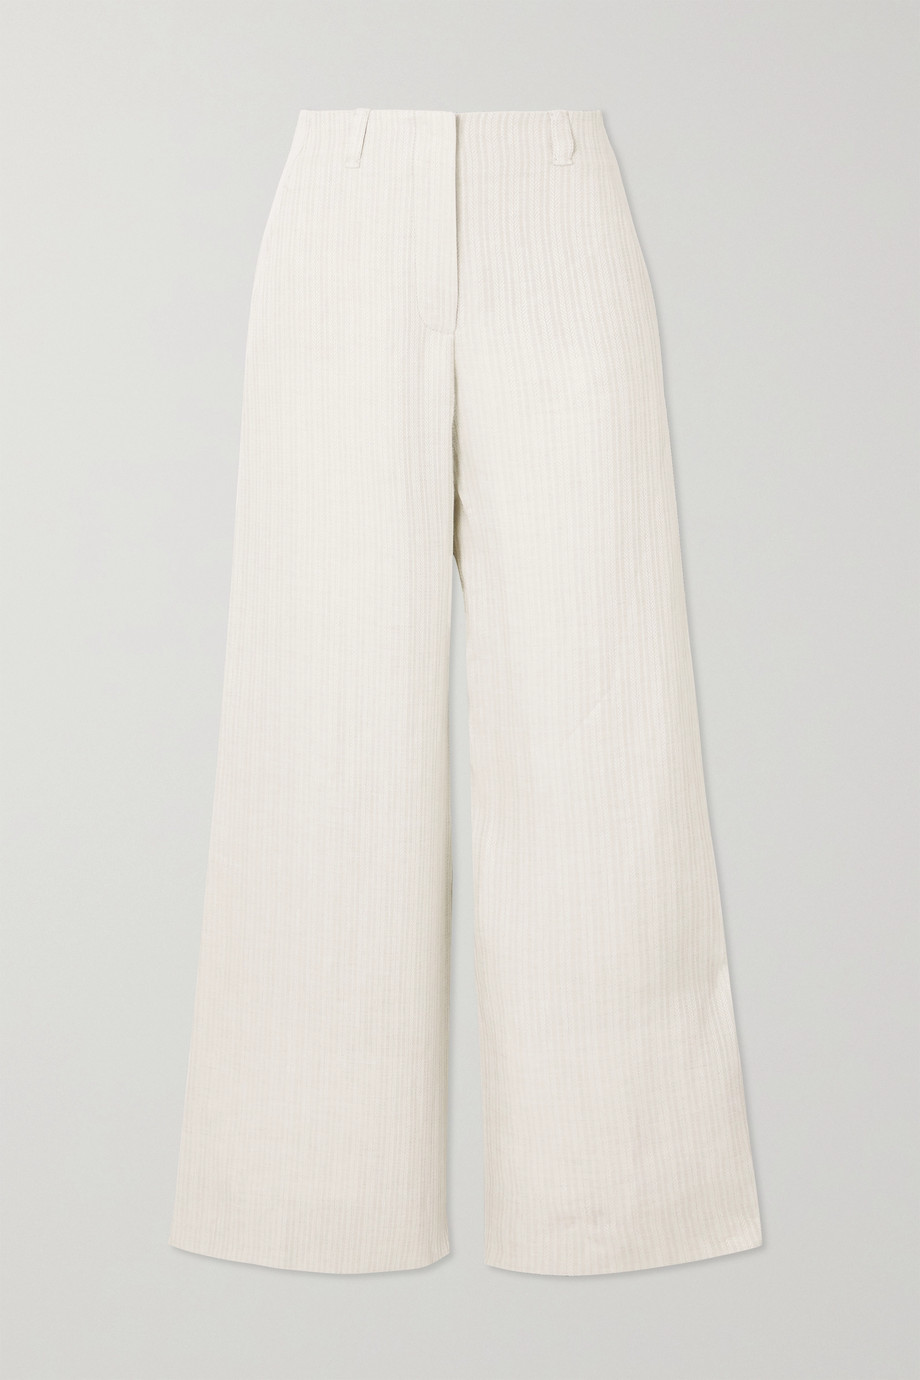 LORO PIANA Harve herringbone linen wide-leg pants